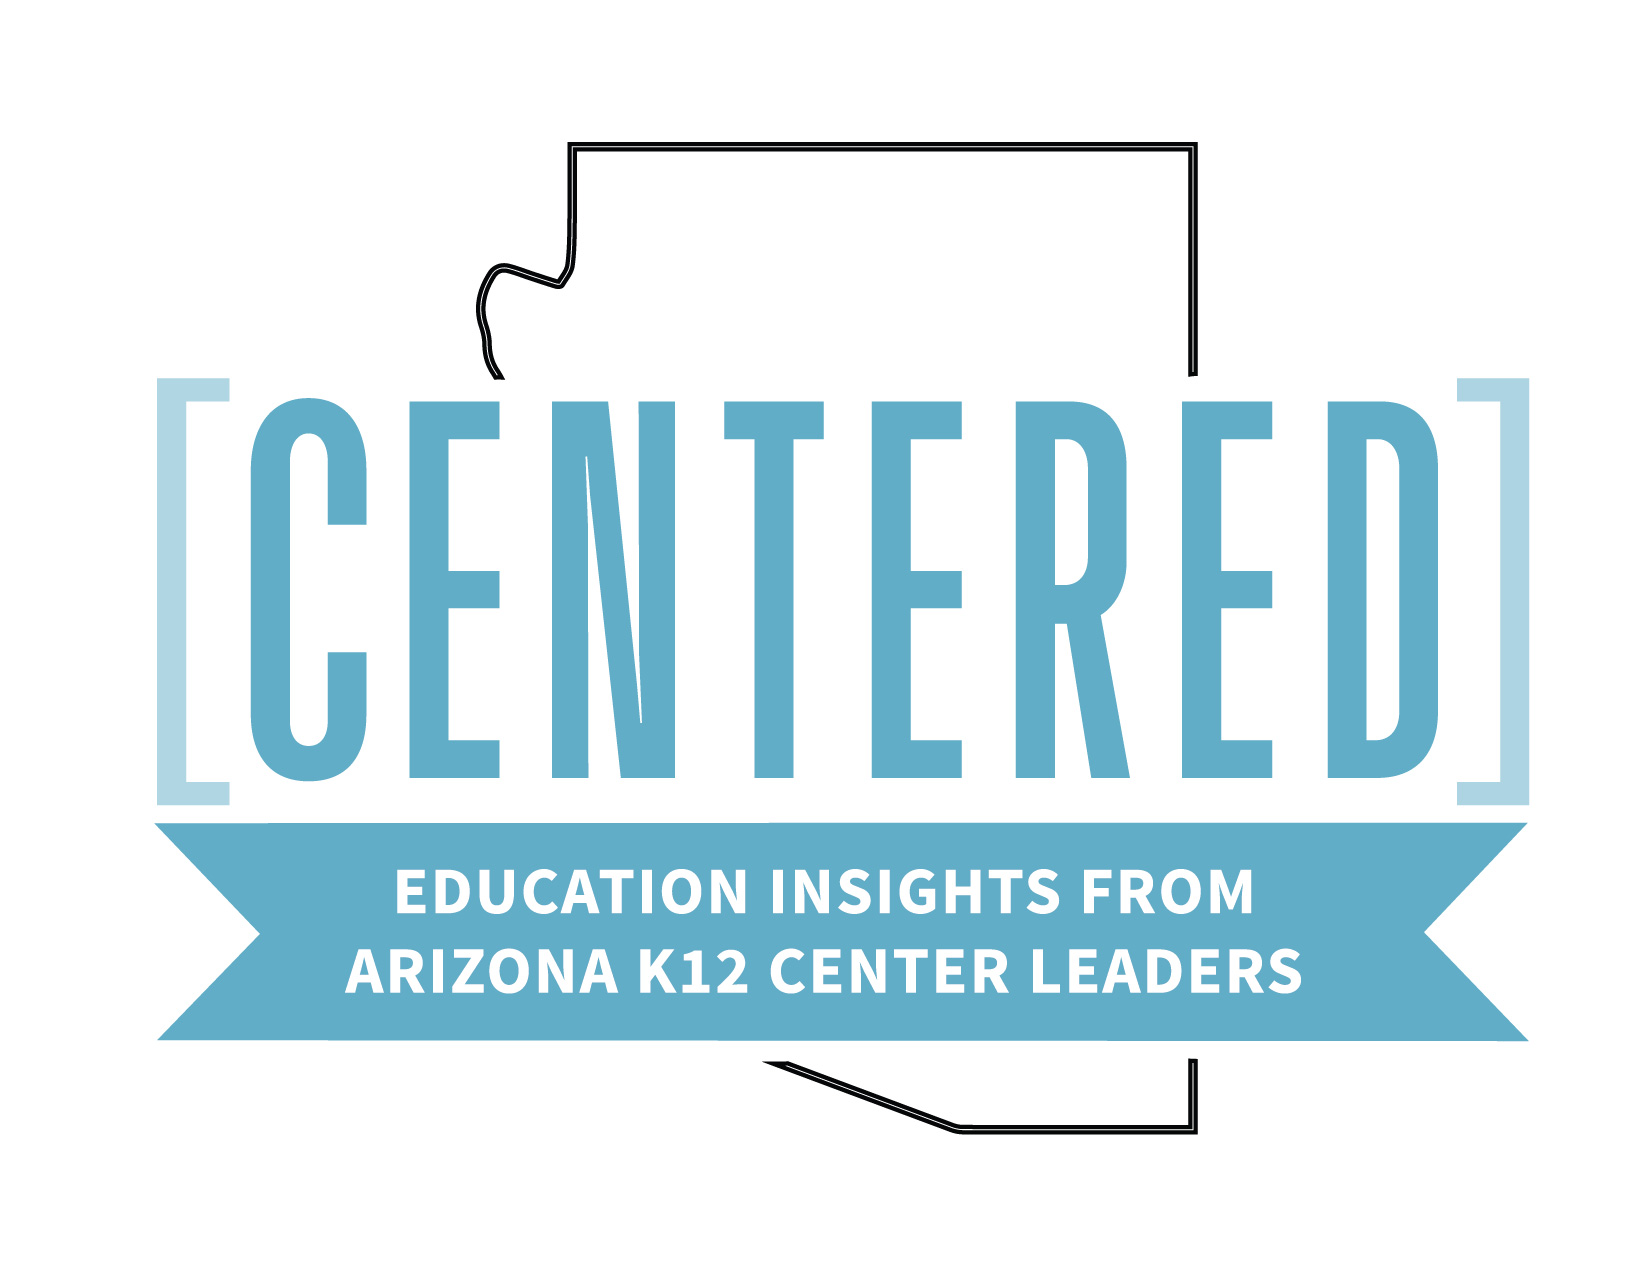 Meet 3Ps in a Pod: The Arizona K12 Centered Podcast